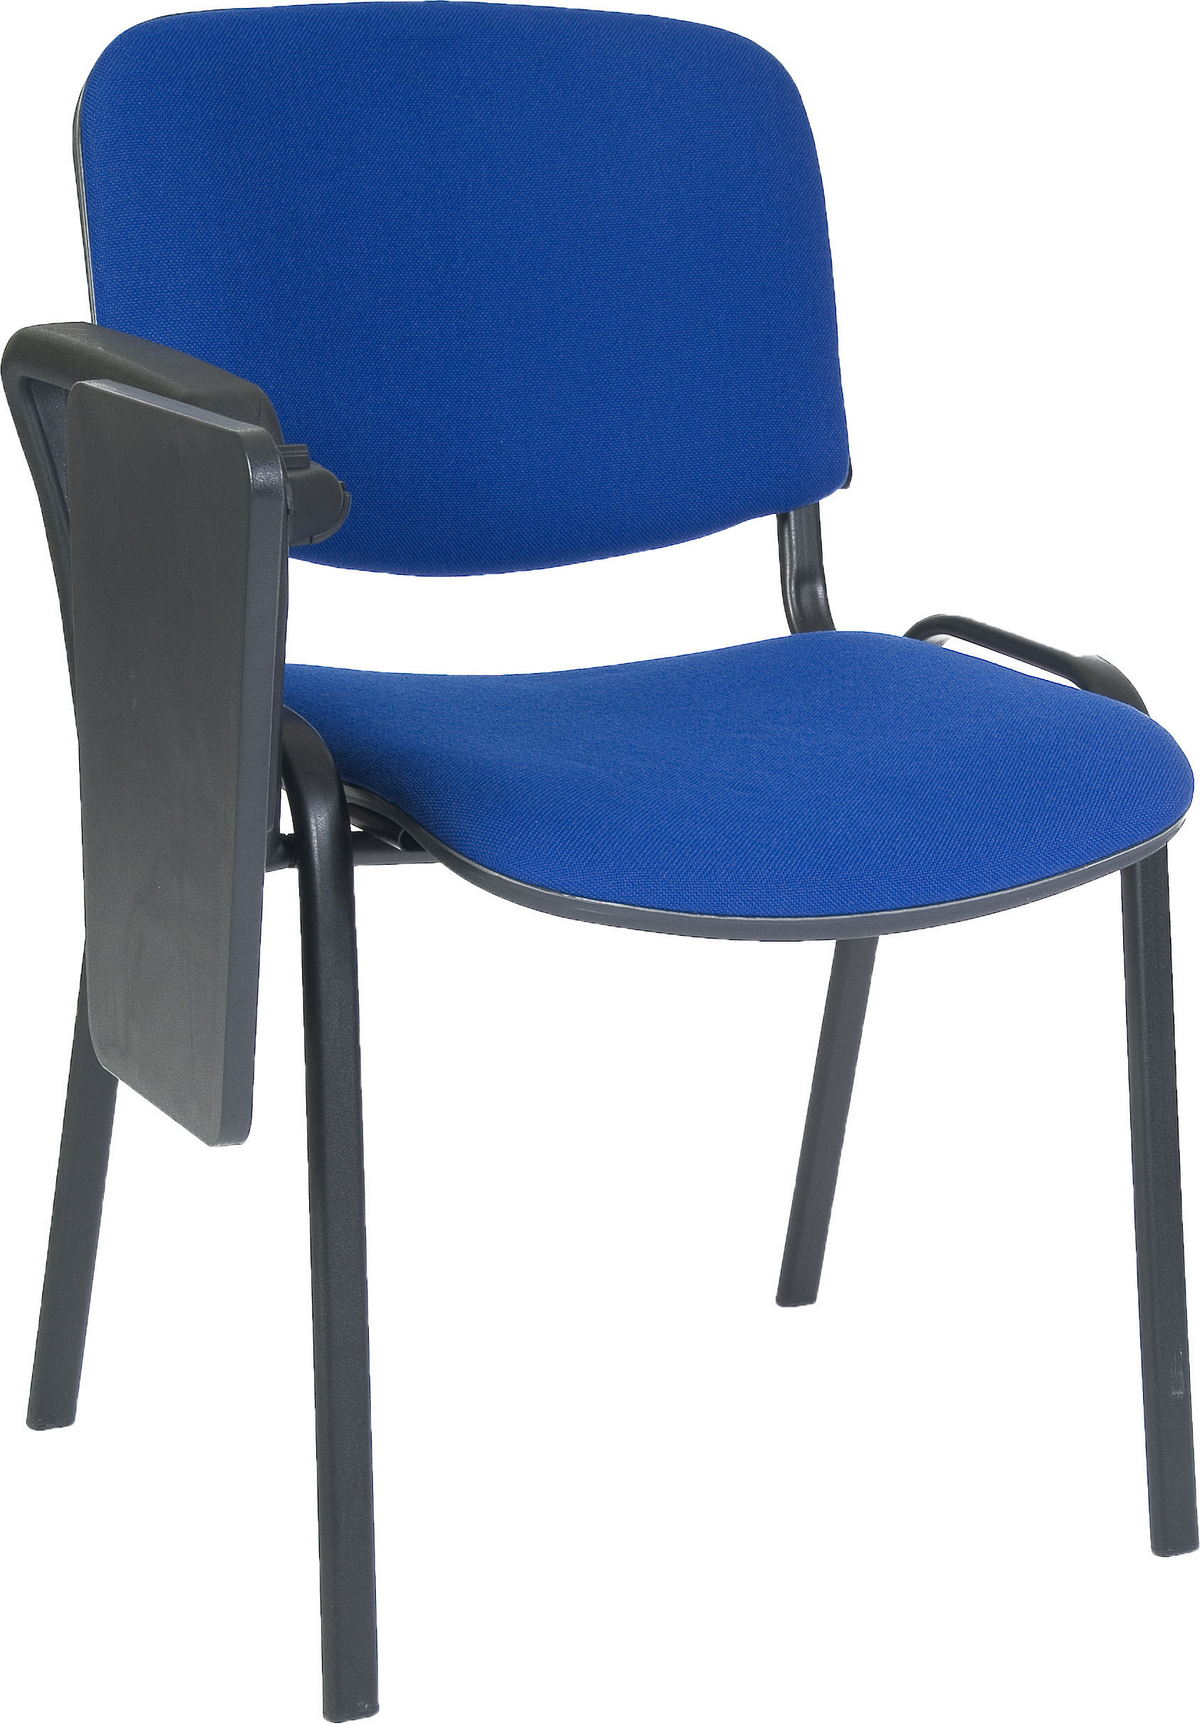 Teknik fice Conference Chair